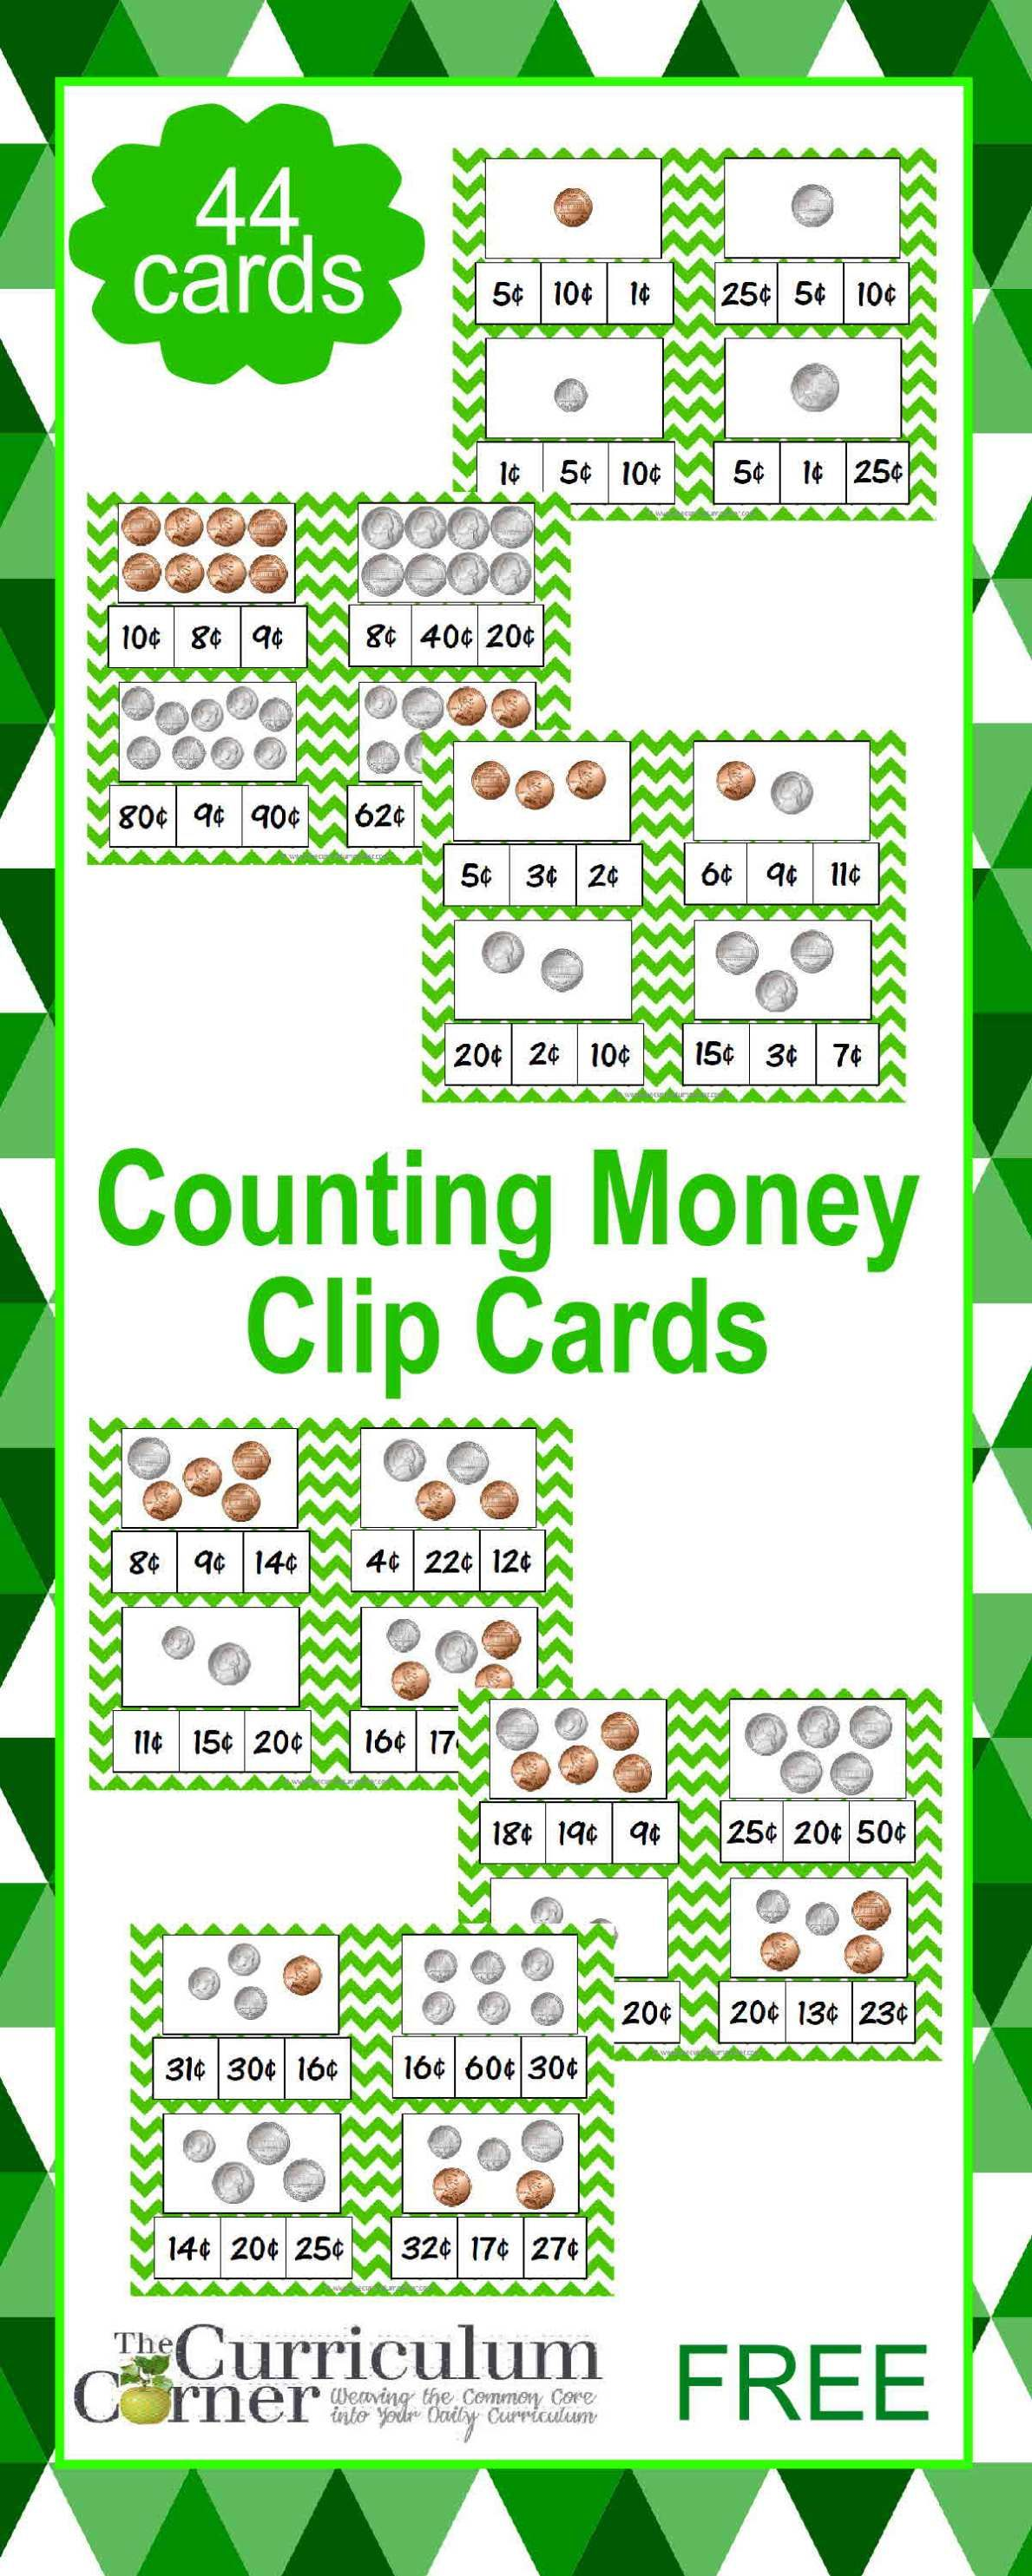 Counting Coins Clip Cards